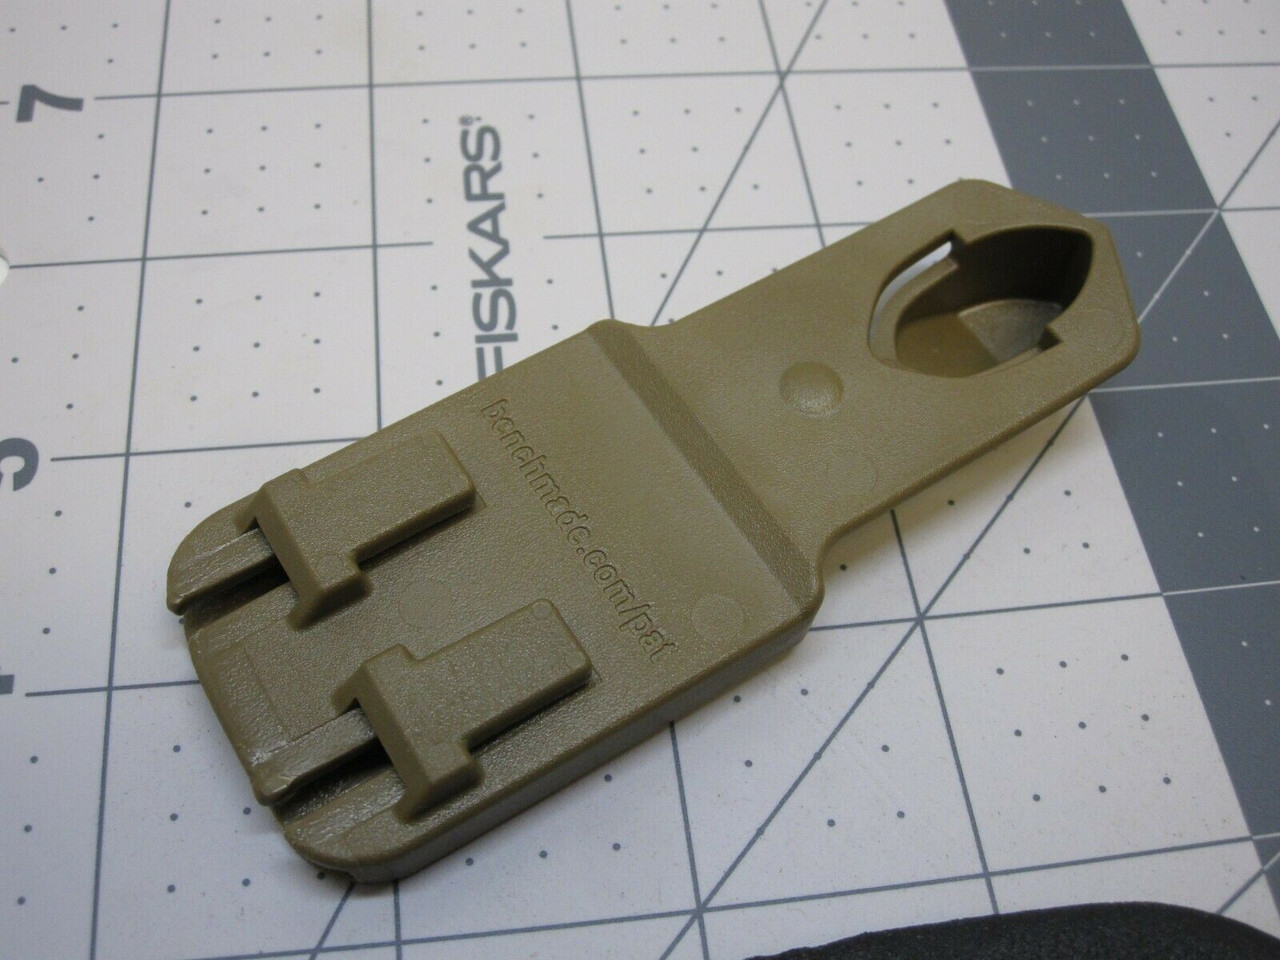 NEW BENCHMADE STRAP CUTTER RESCUE 7 HOOK KNIFE w/ MOLLE/PALS KYDEX SHEATH COYOTE